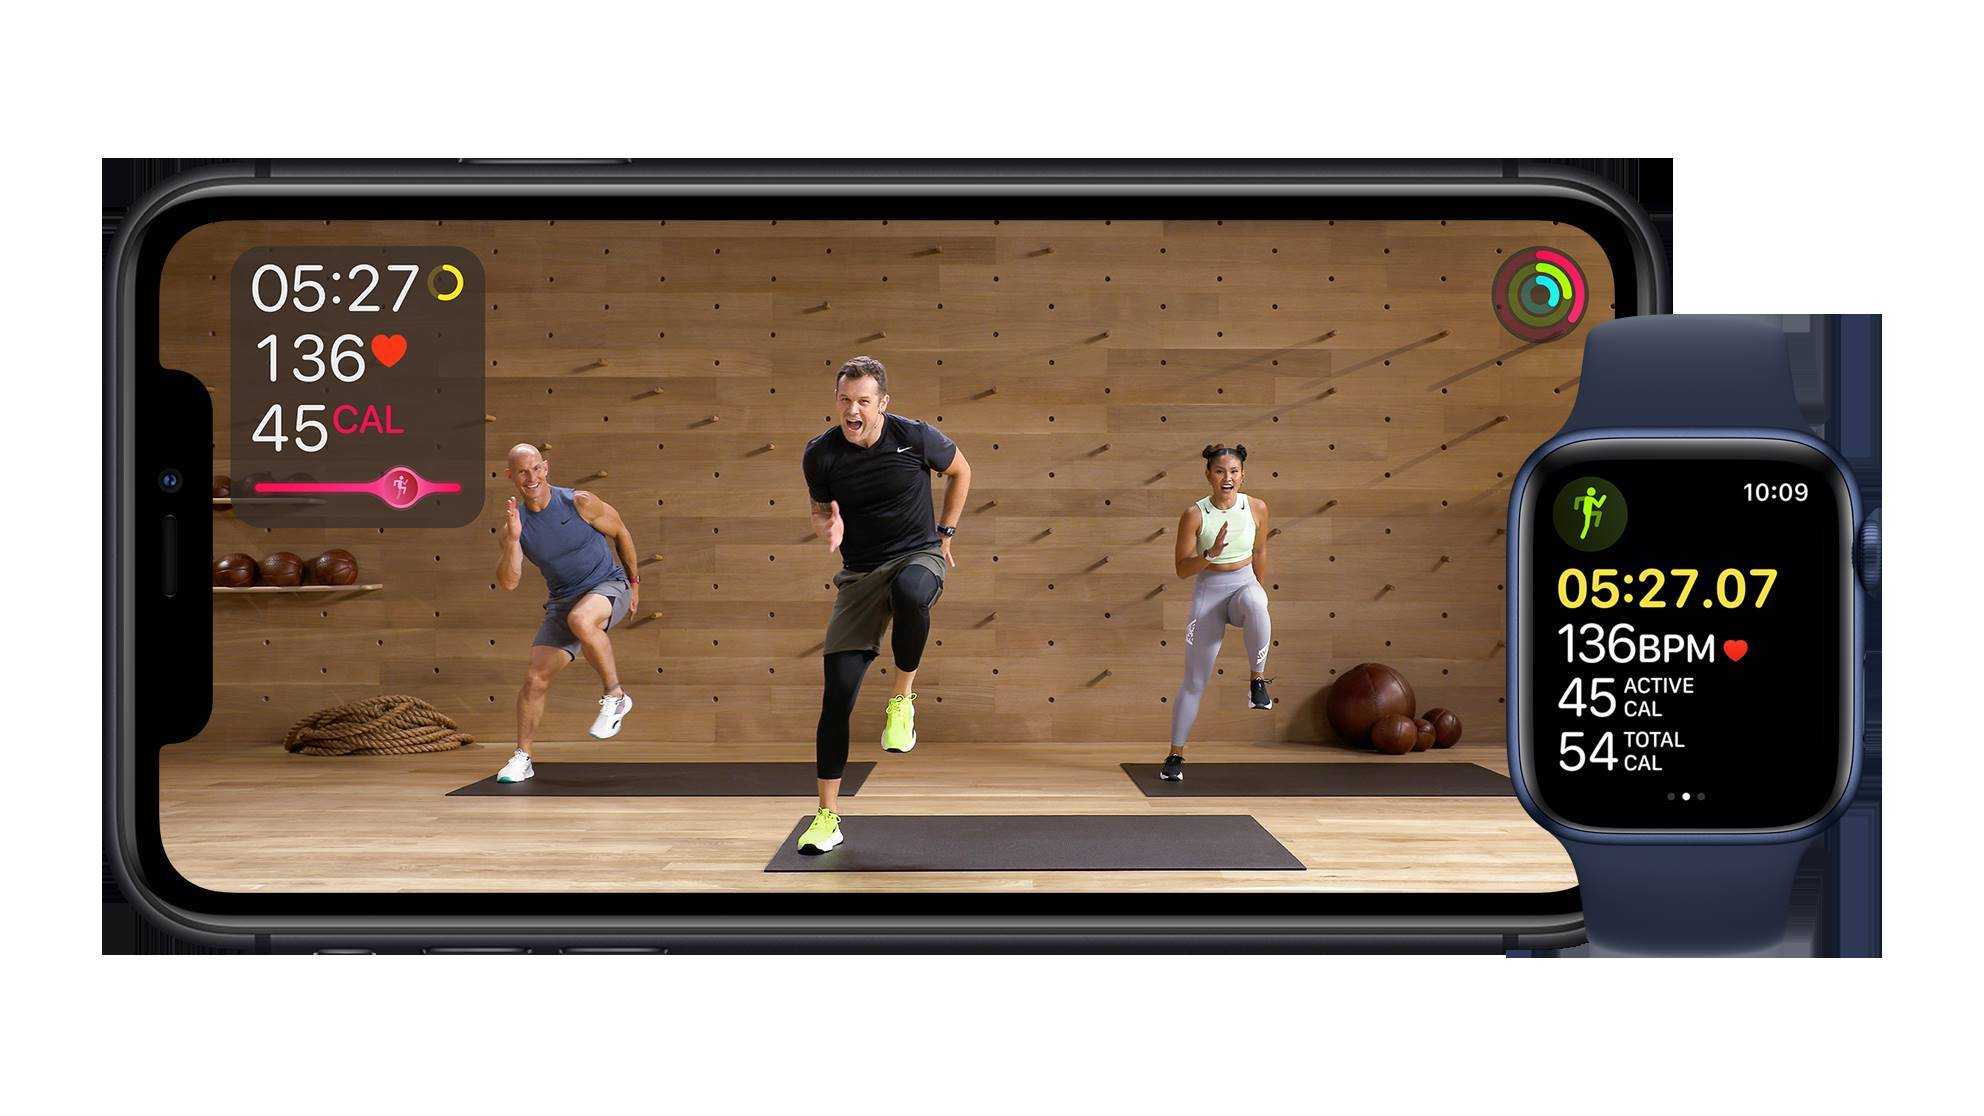 Apple rolls out virtual fitness service, subscription bundle, new hardware